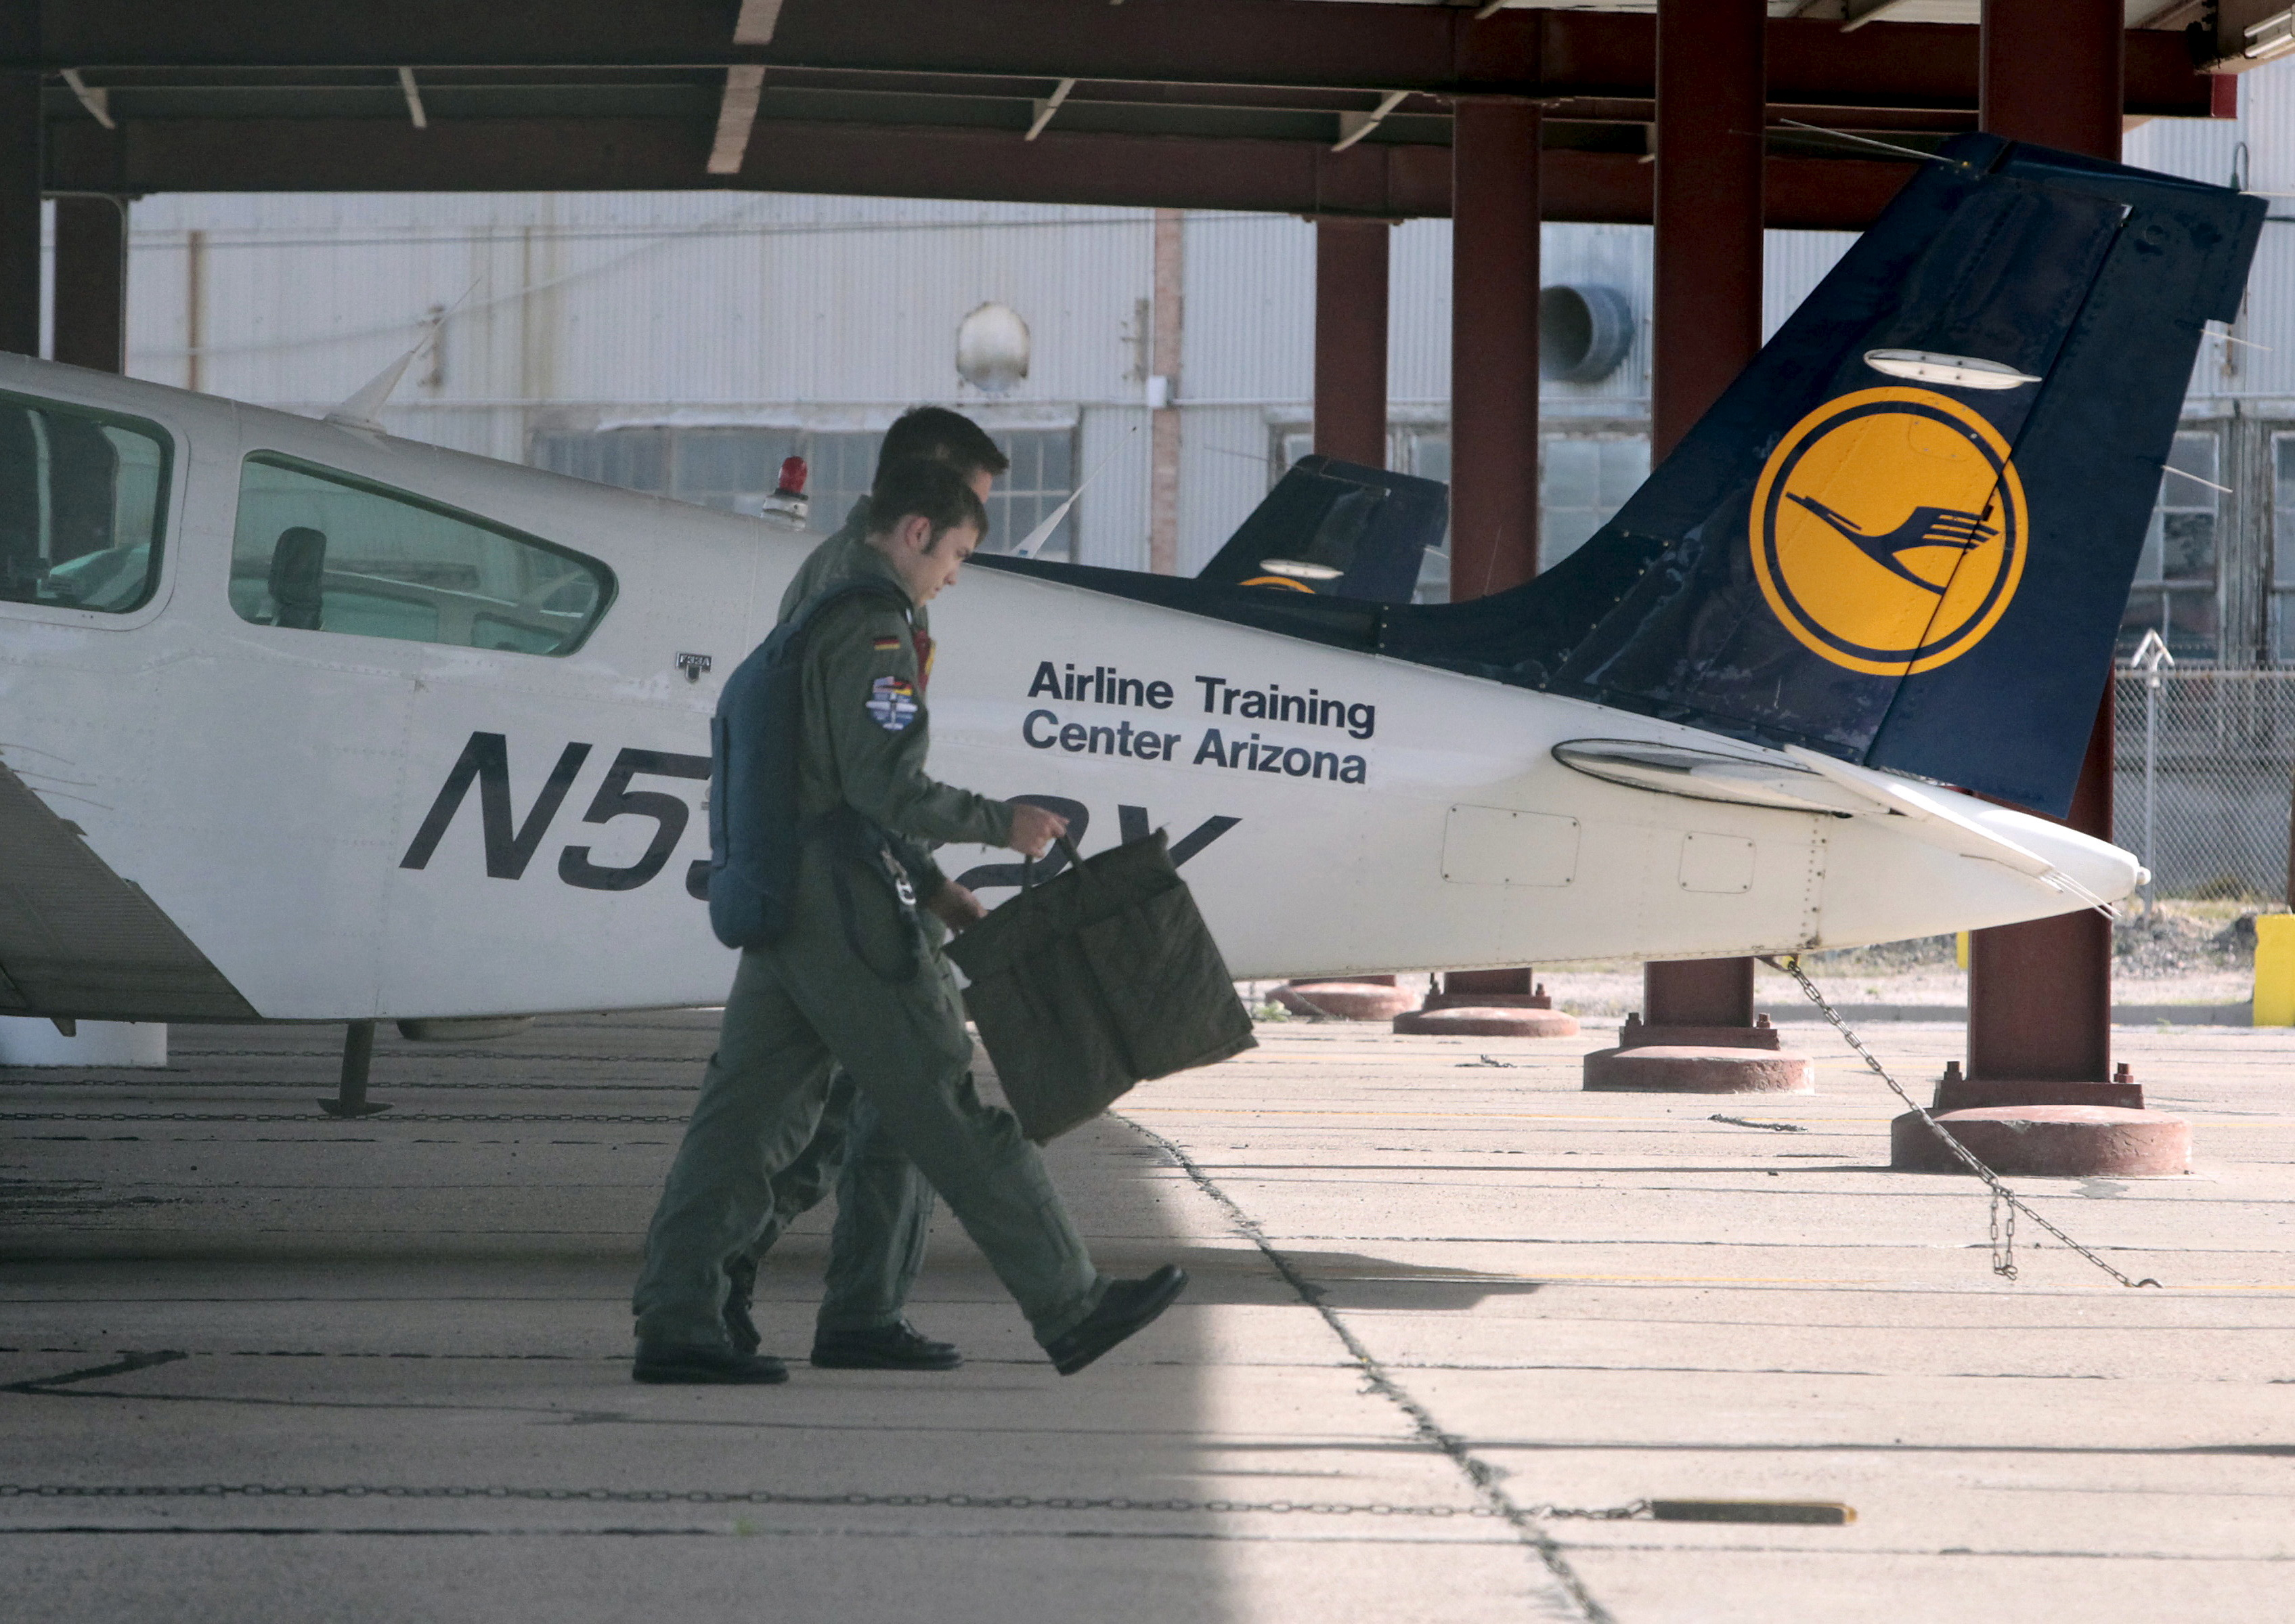 Pilots walk past a Lufthansa light aircraft trainer at the Airline Training Center Arizona (ATCA) in Goodyear, Arizona March 26, 2015